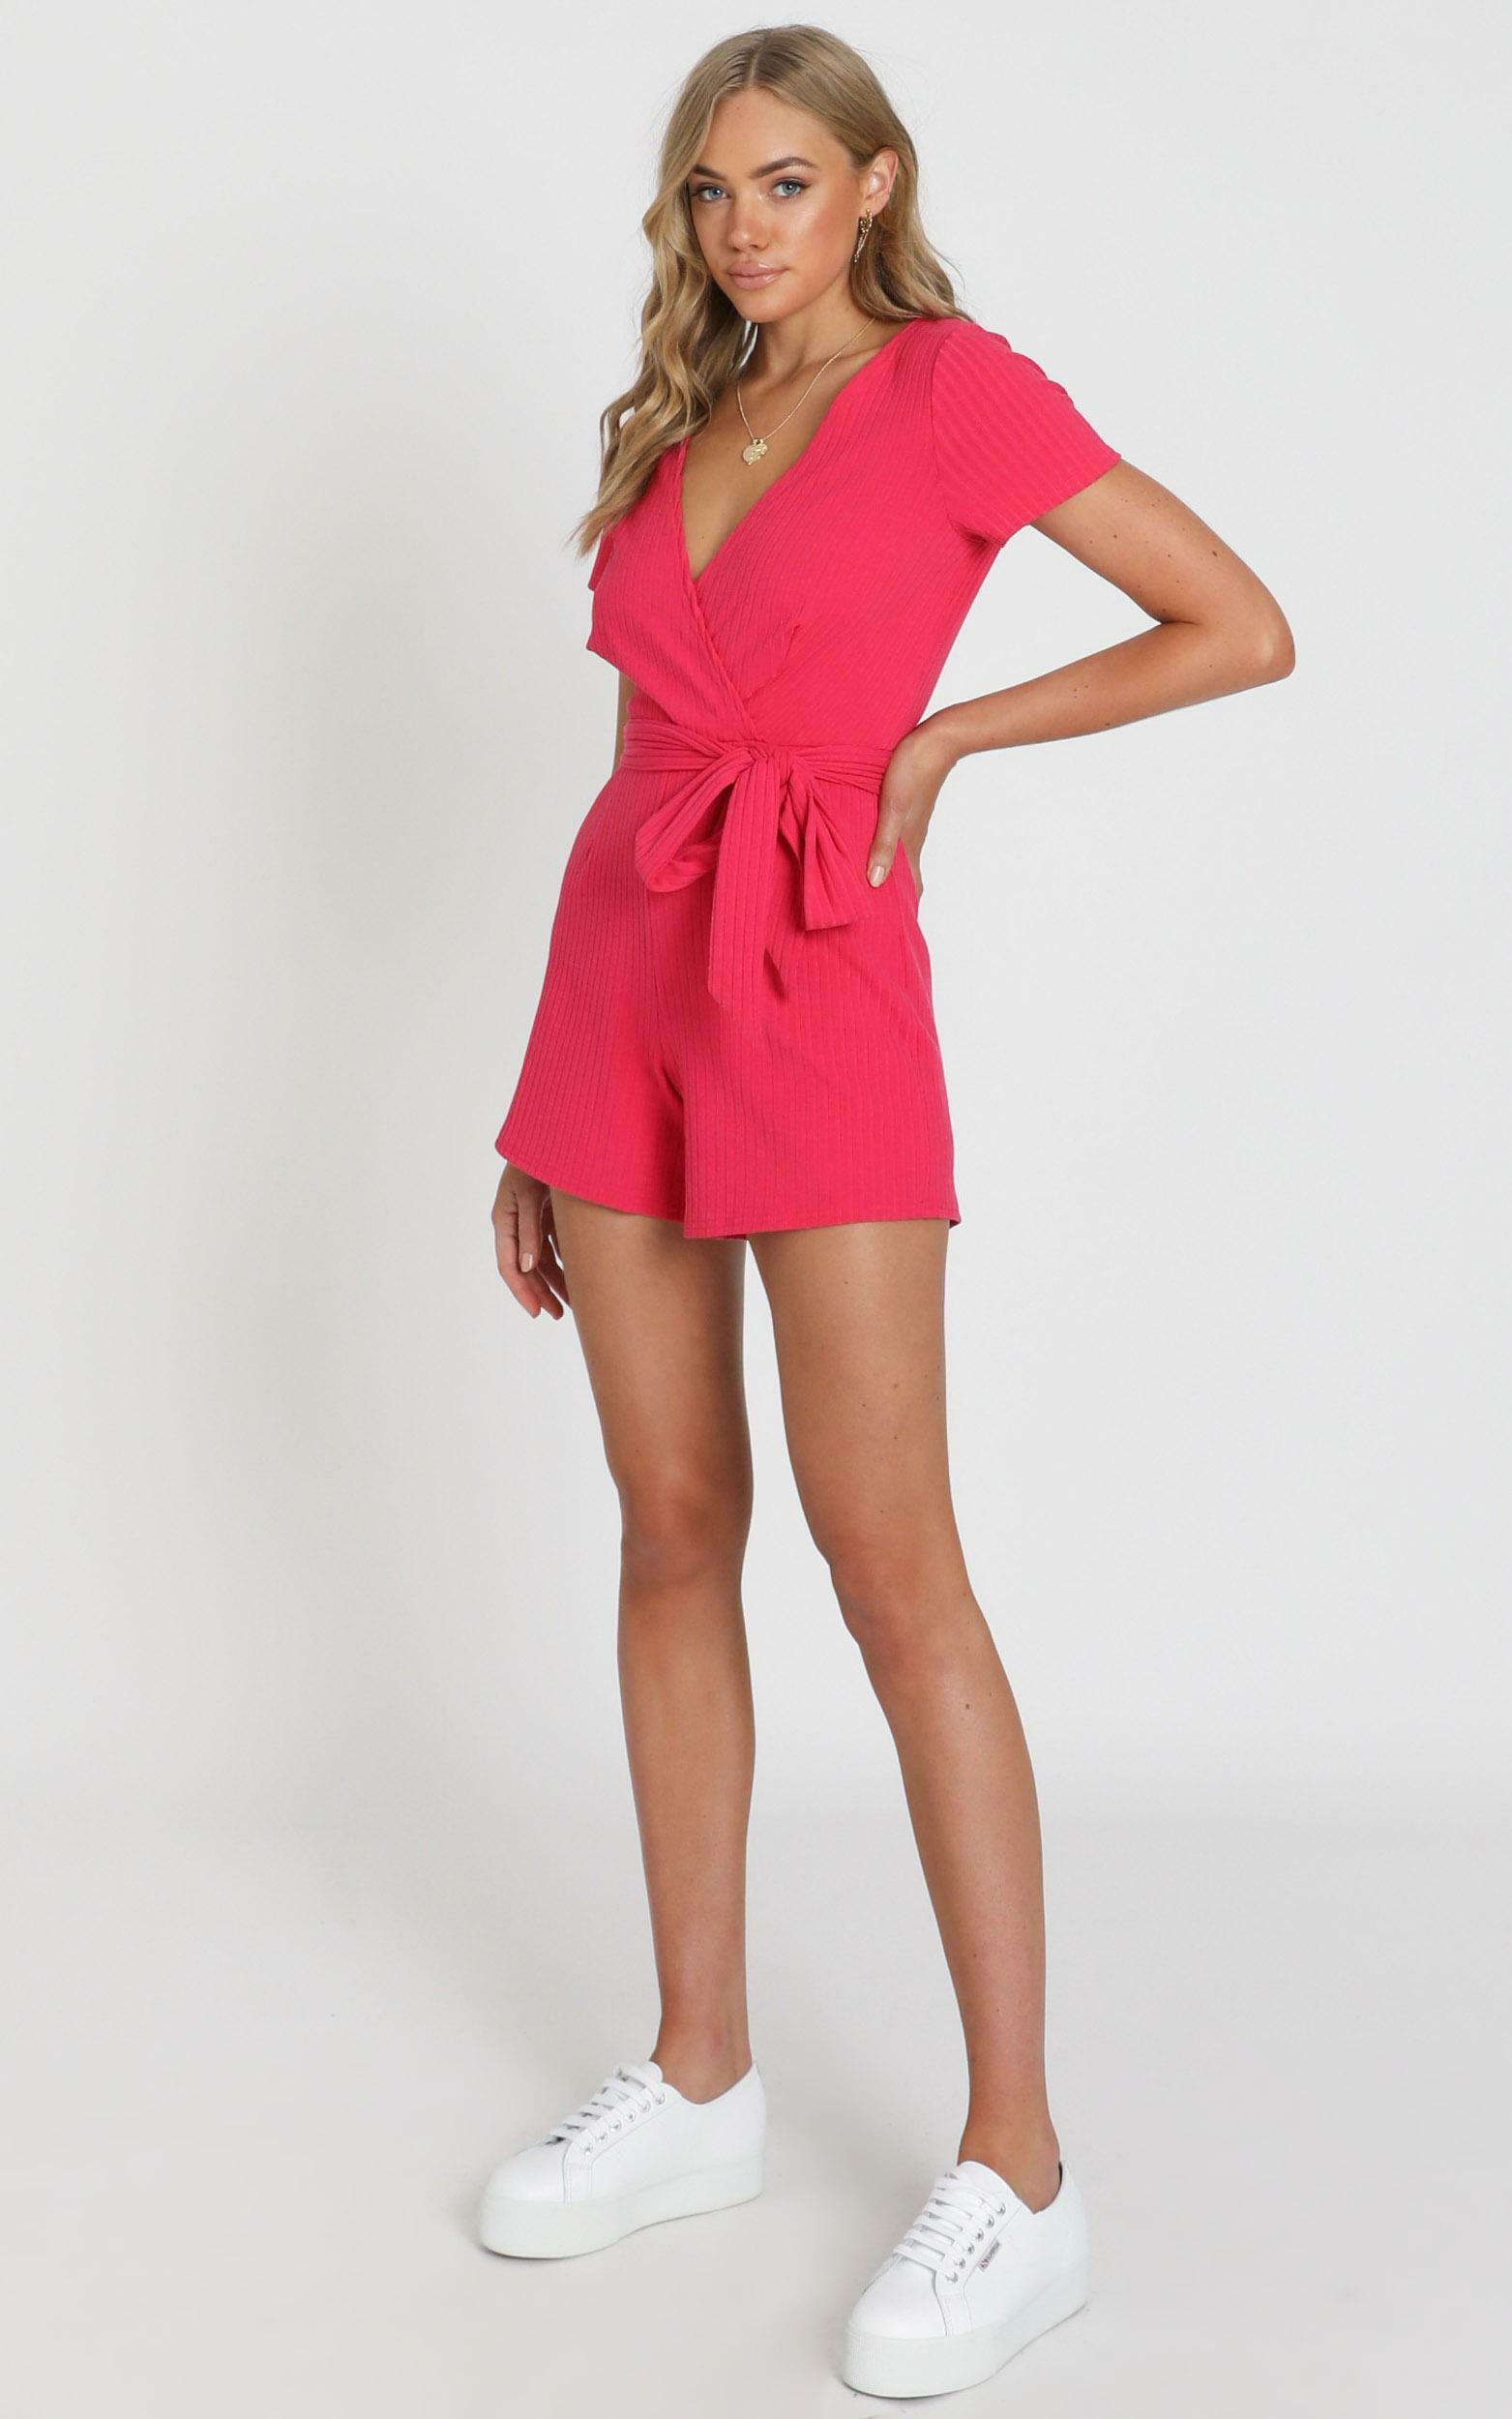 Star Gal Playsuit in hot pink rib - 20 (XXXXL), Pink, hi-res image number null